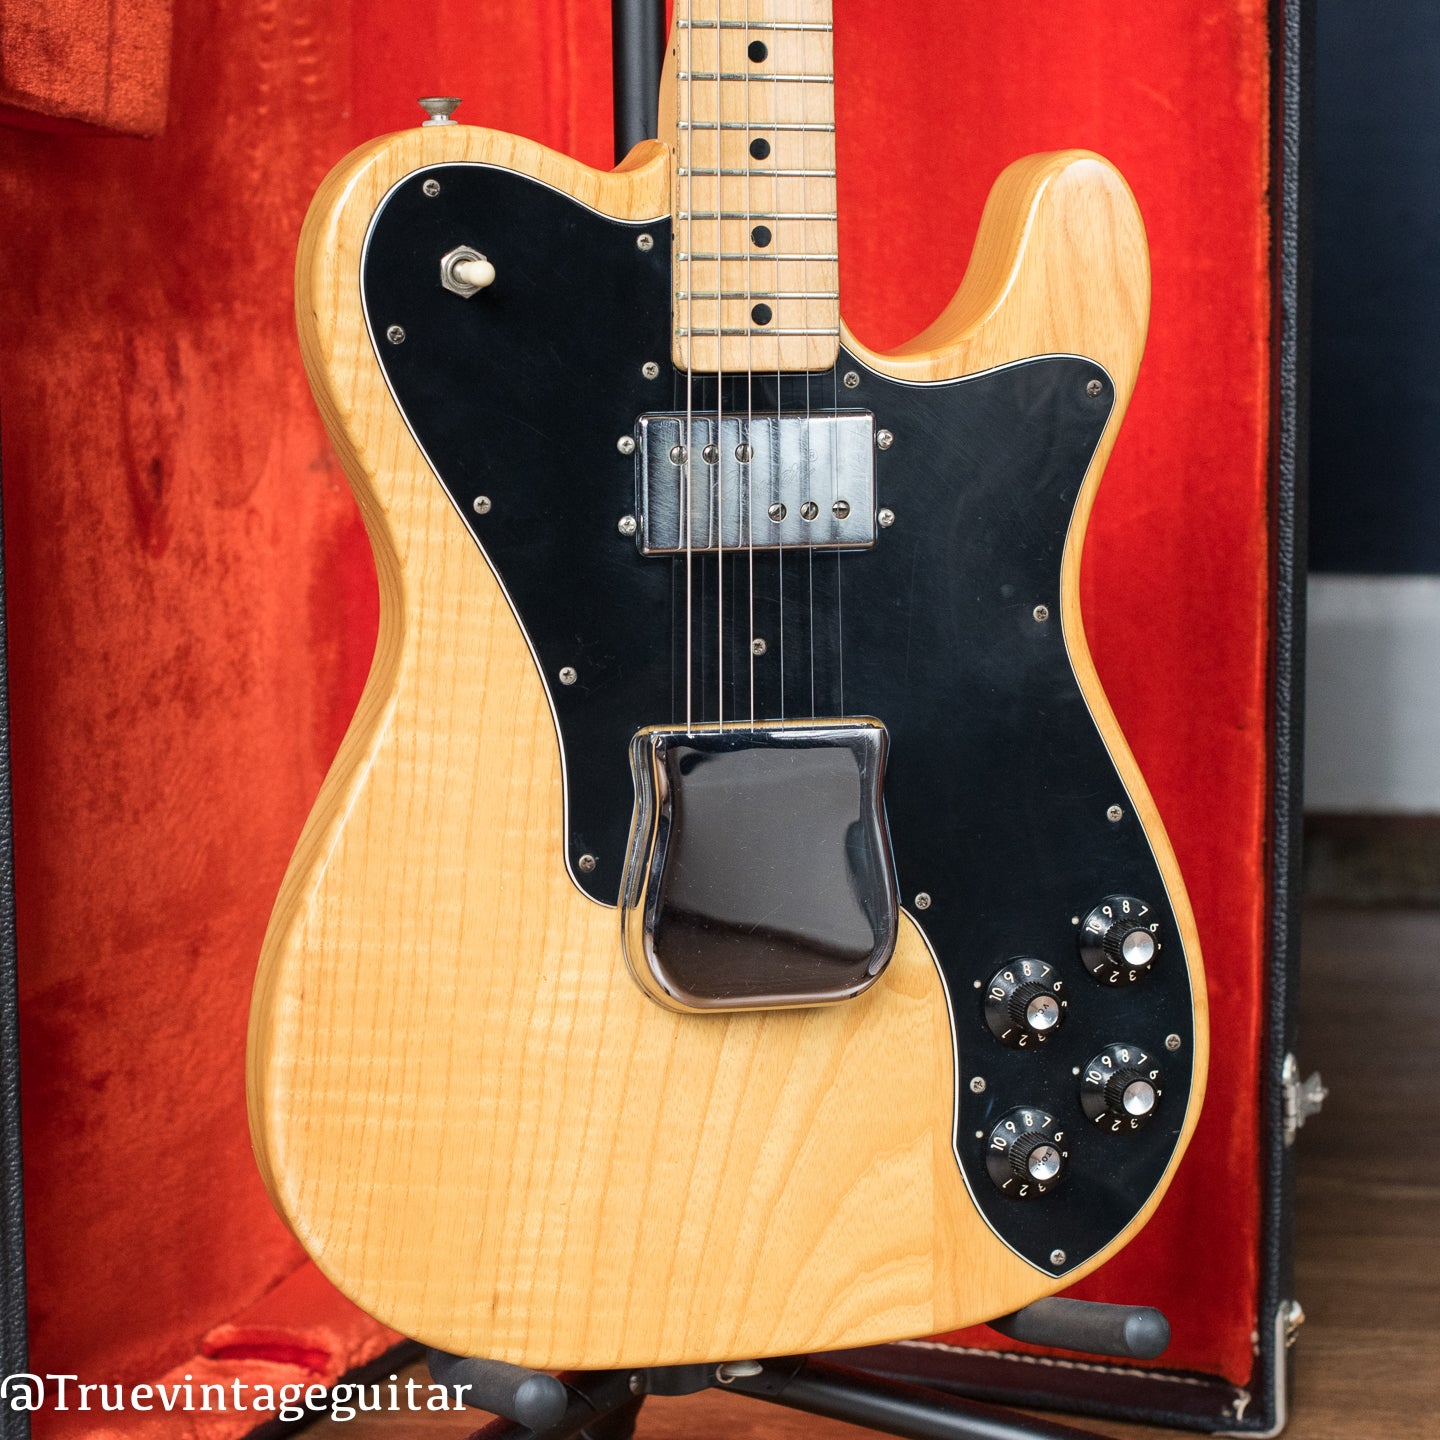 1975 Fender Telecaster Custom Natural body with bridge cover